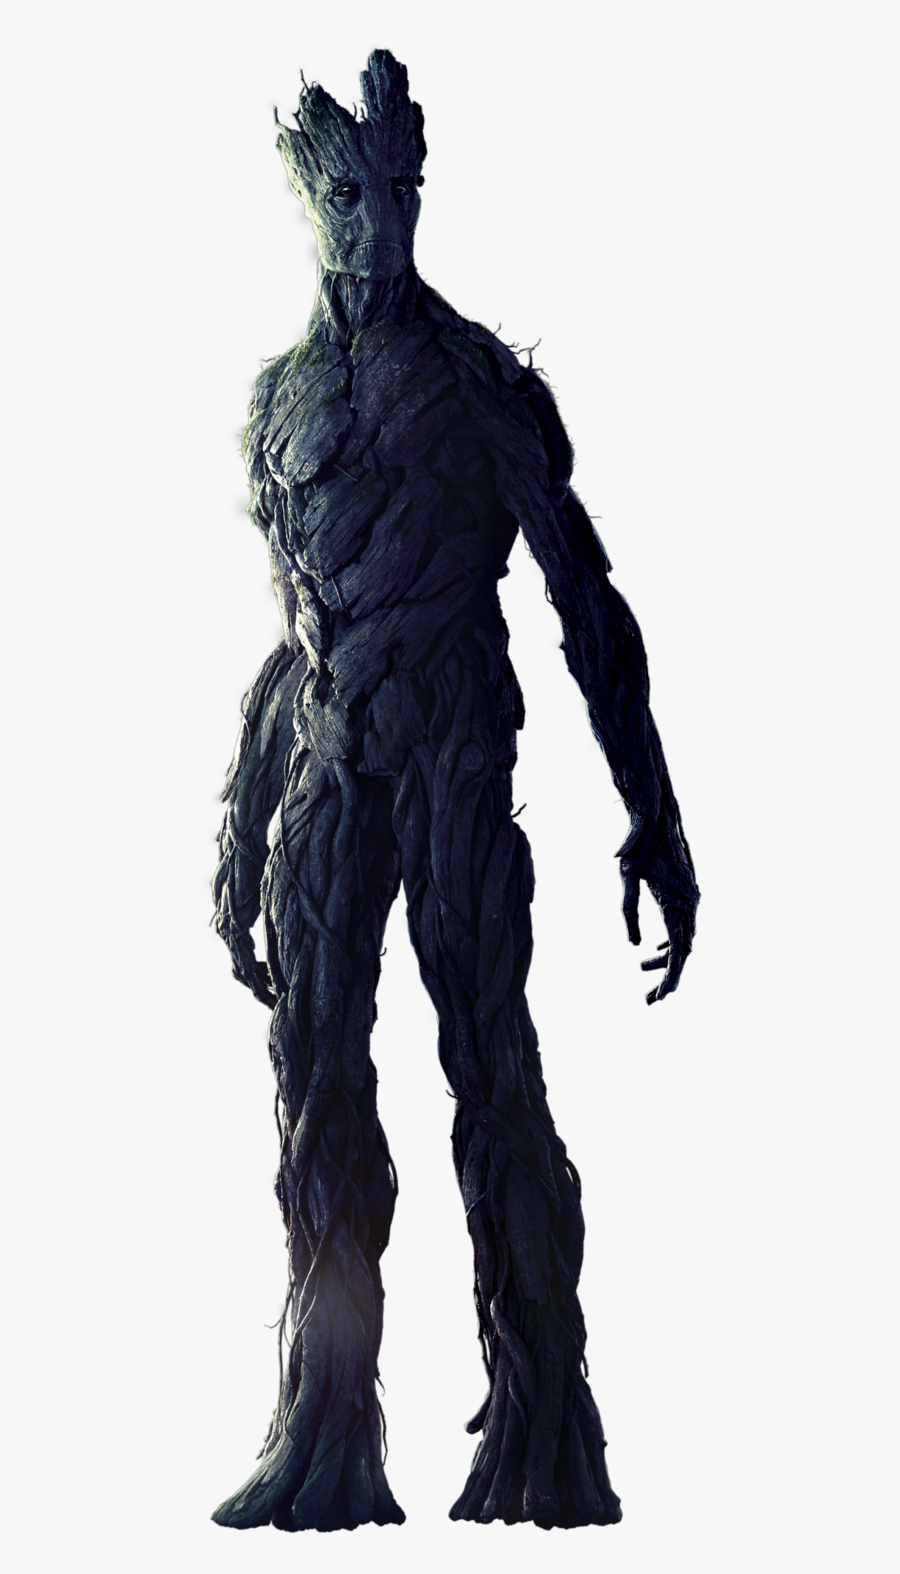 Guardians Of The Galaxy Png Image - Guardians Of The Galaxy Groot Png, Transparent Clipart